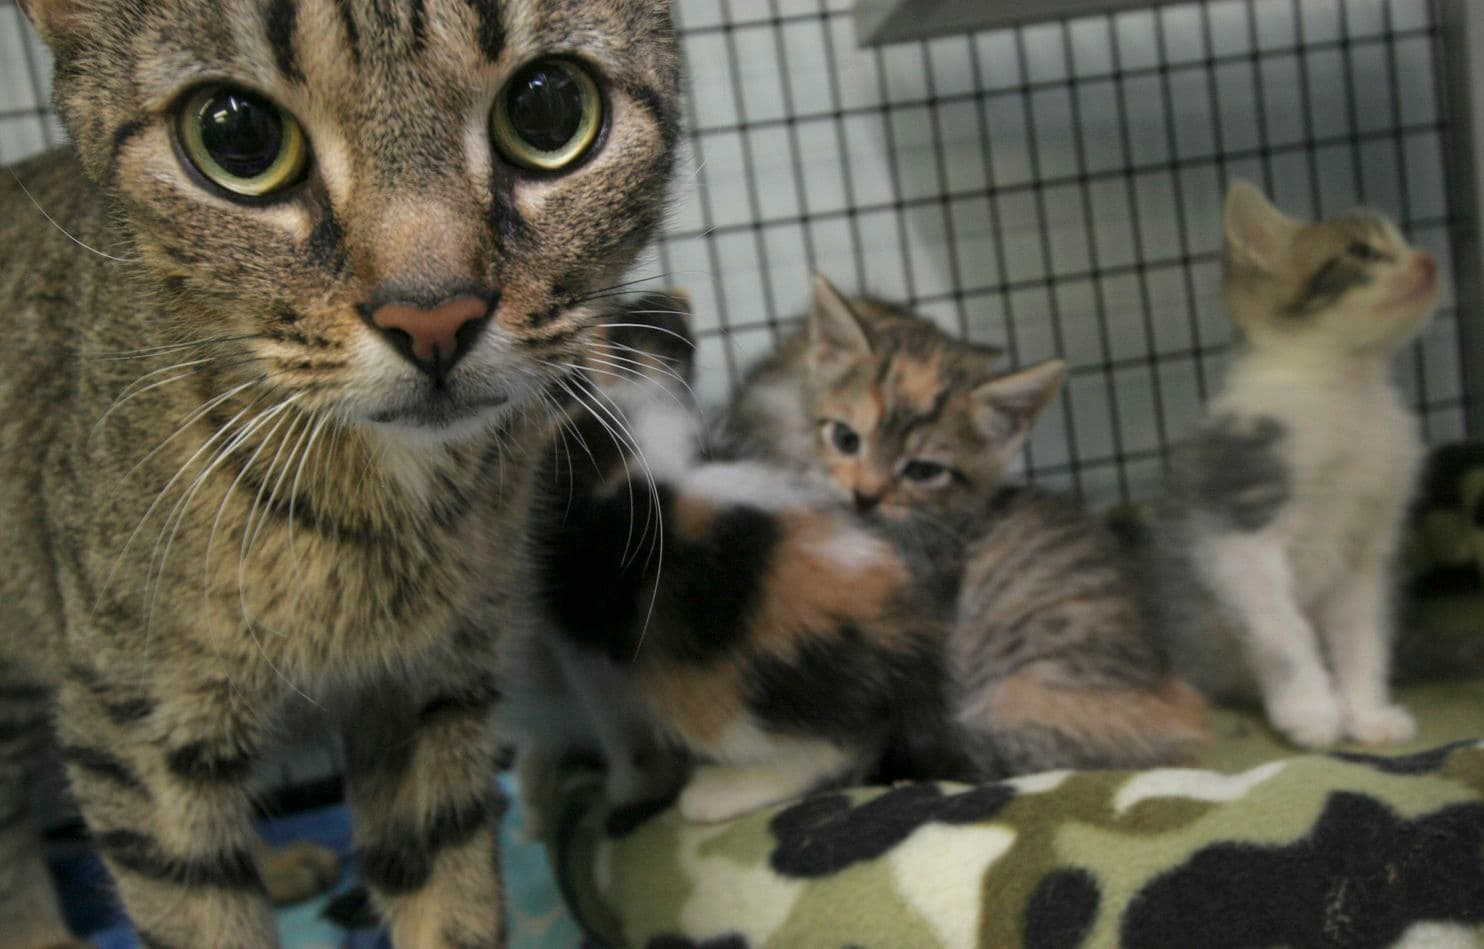 19 evicted cats in need of homes in Tucson | Local news